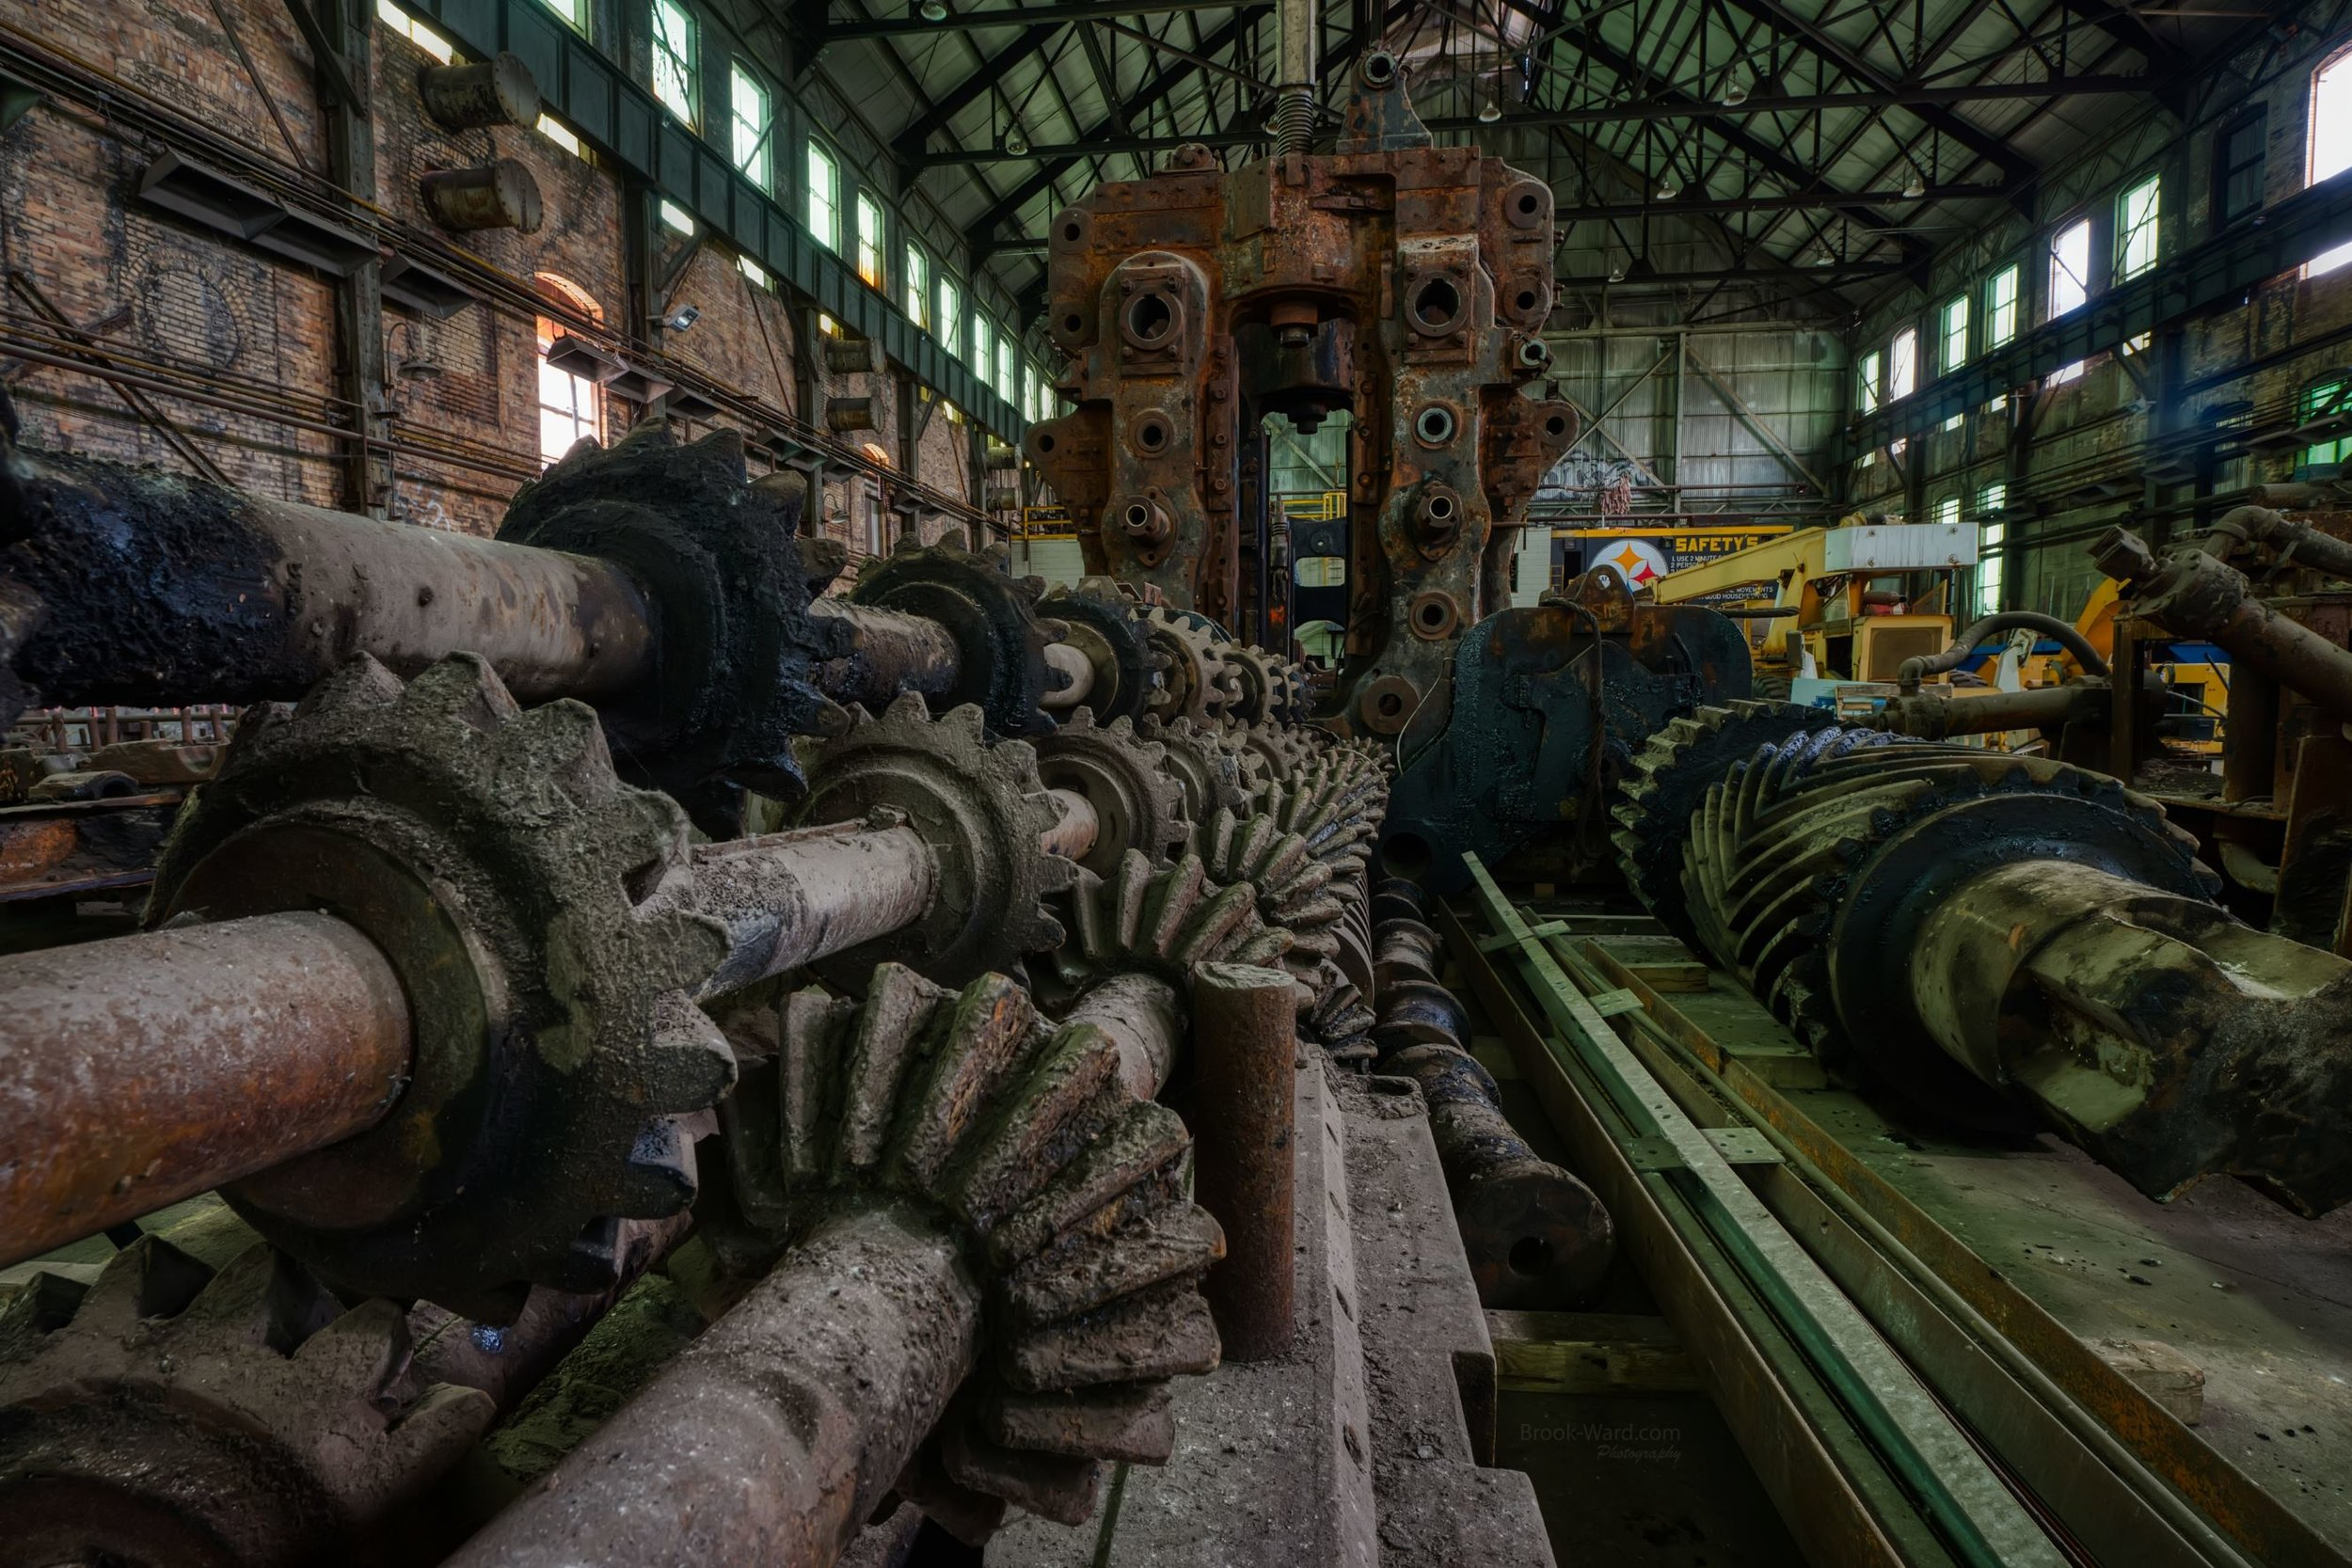 Gears at Carrie Furnace